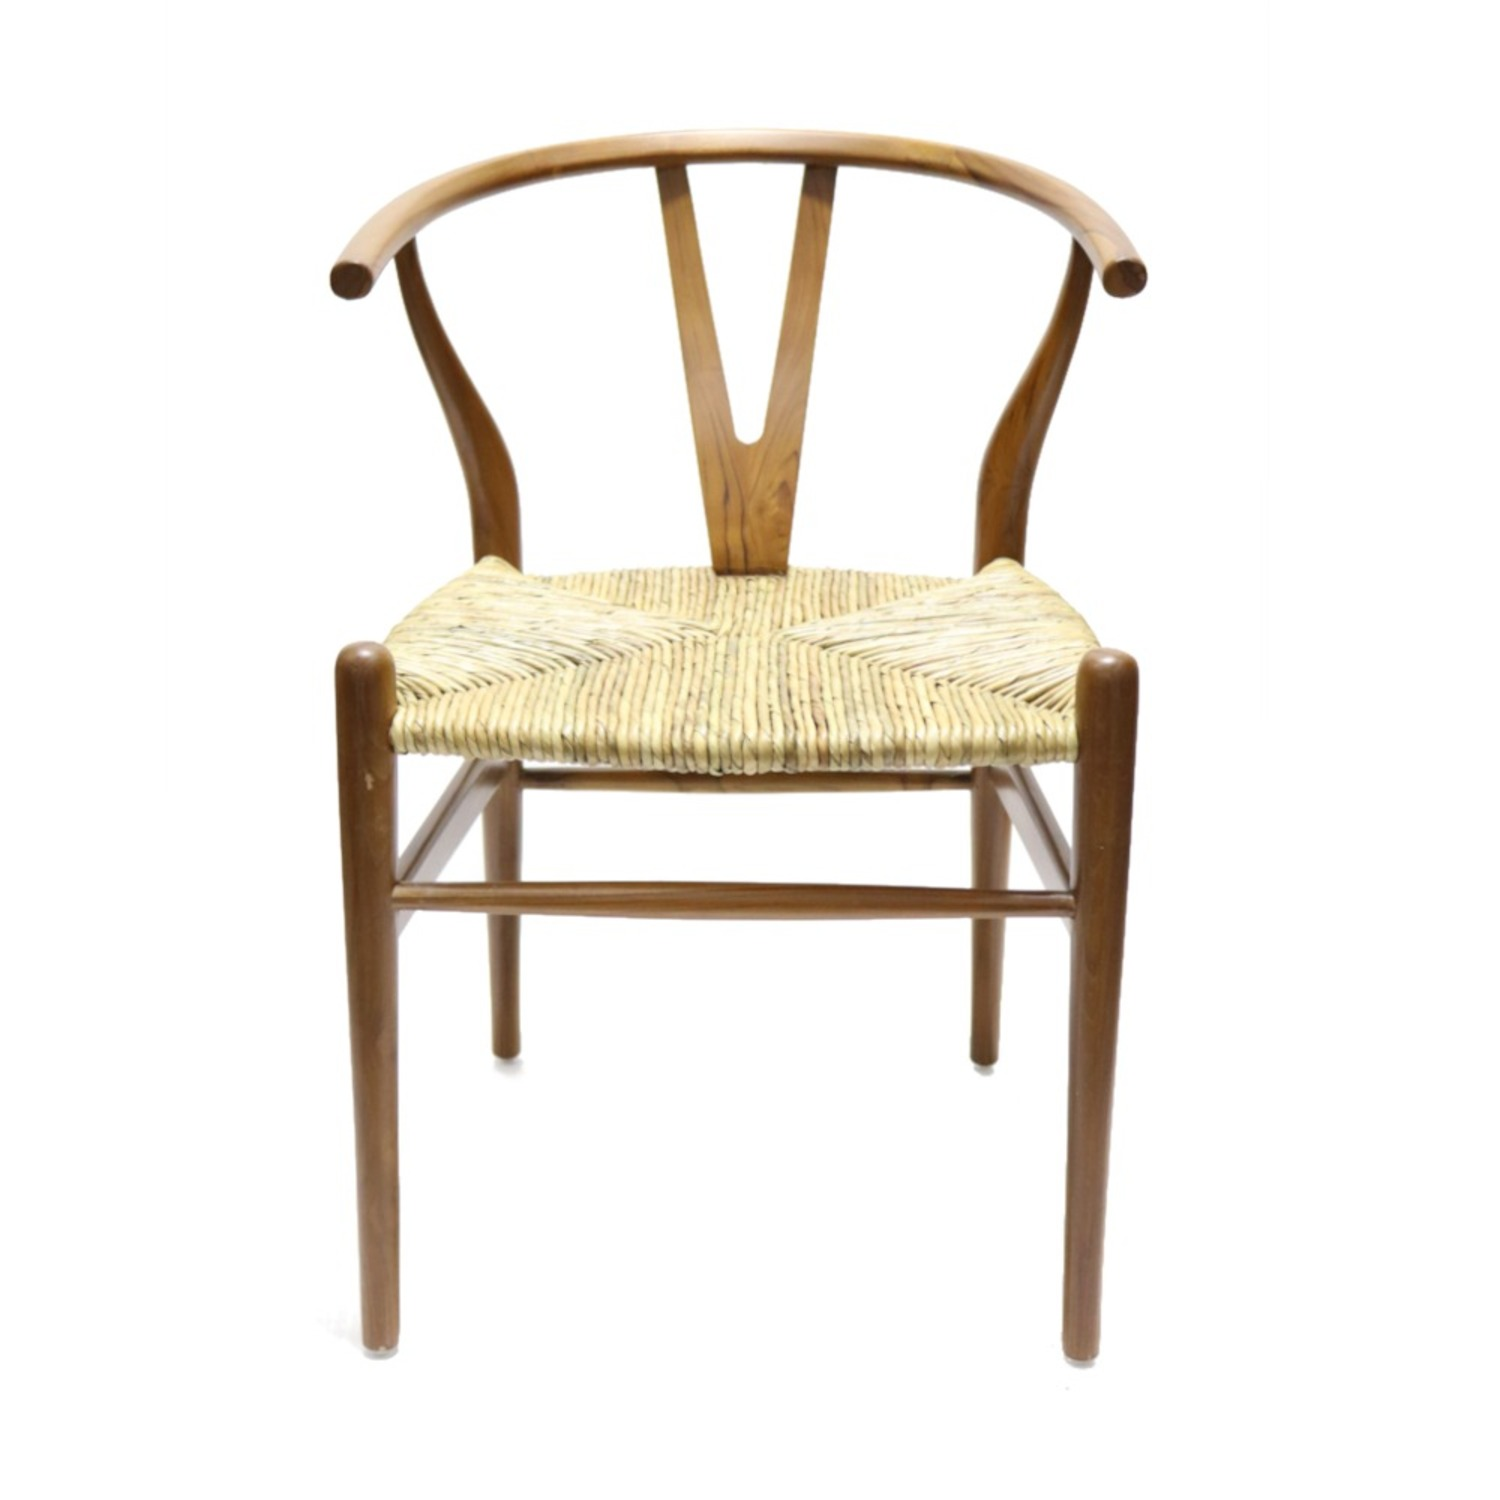 Dining Chair In Walnut Frame & Natural Hemp Seat - image-6